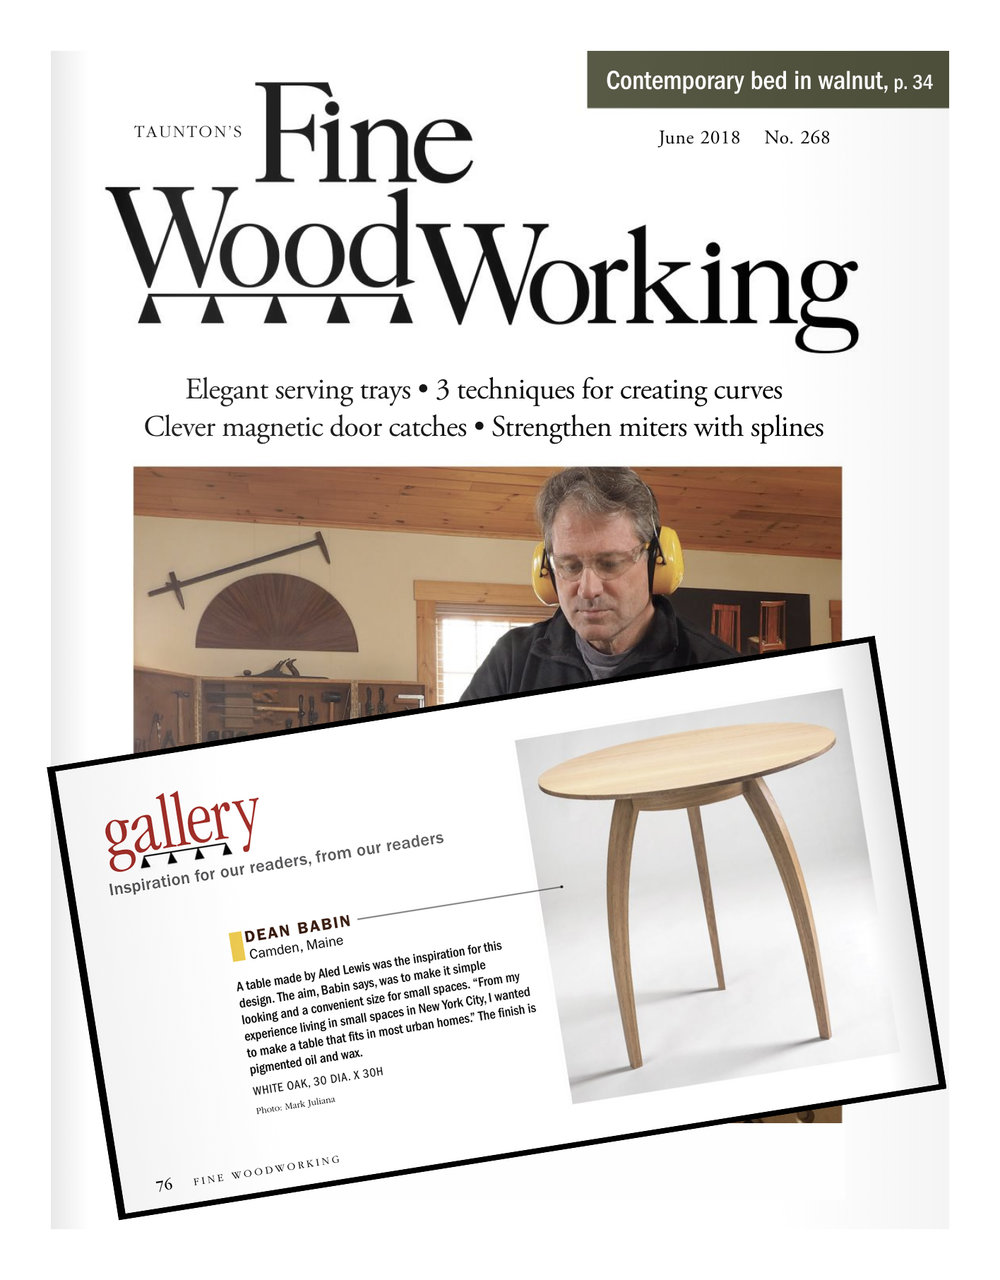 fine-woodworking-table-dean-babin.jpg